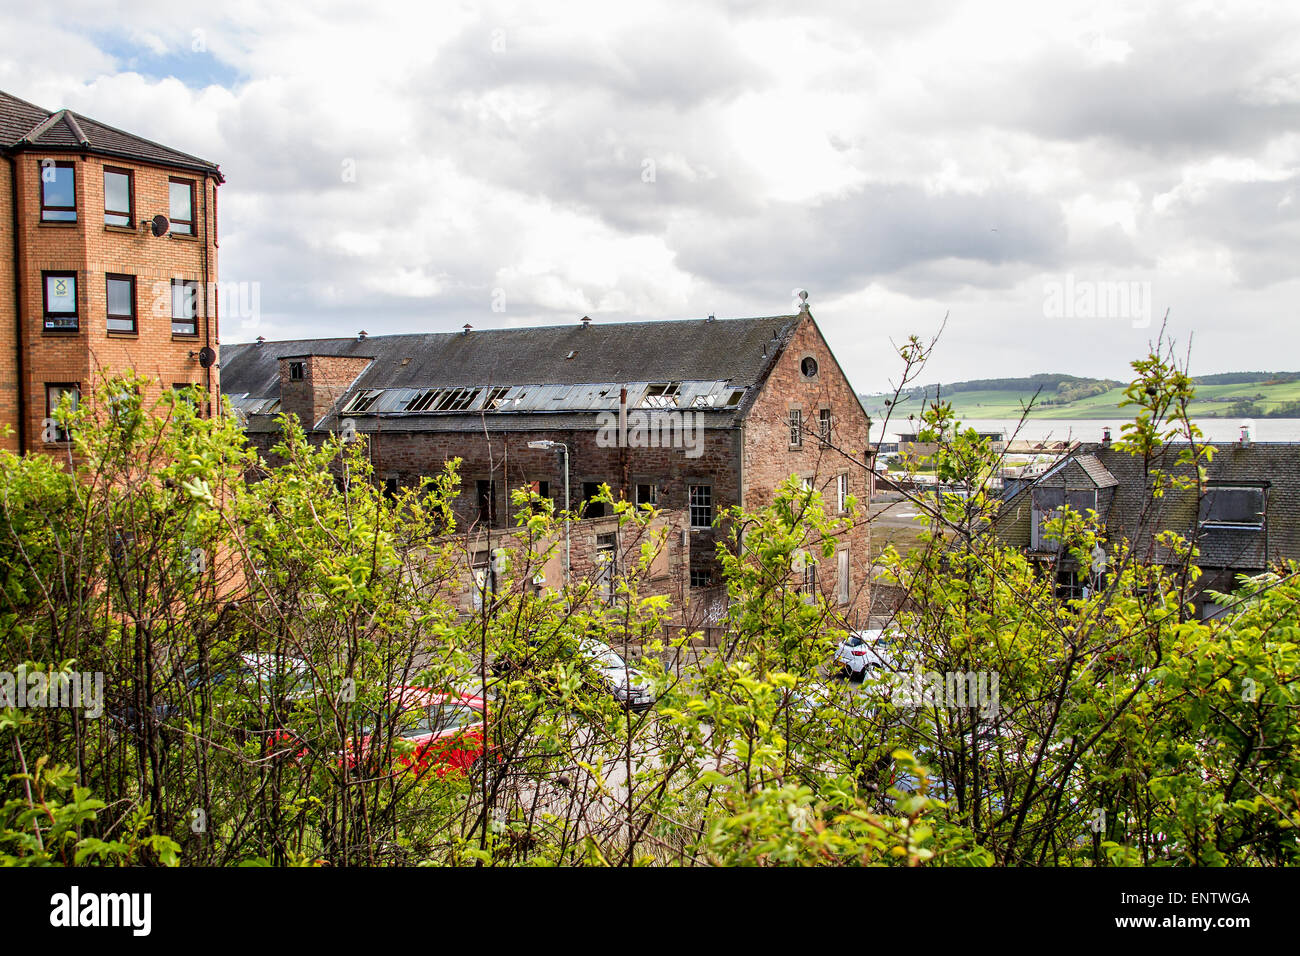 View of the 1836 derelict William Halley & Sons Ltd Jute Mill which is a Listed Building in Dundee,UK - Stock Image